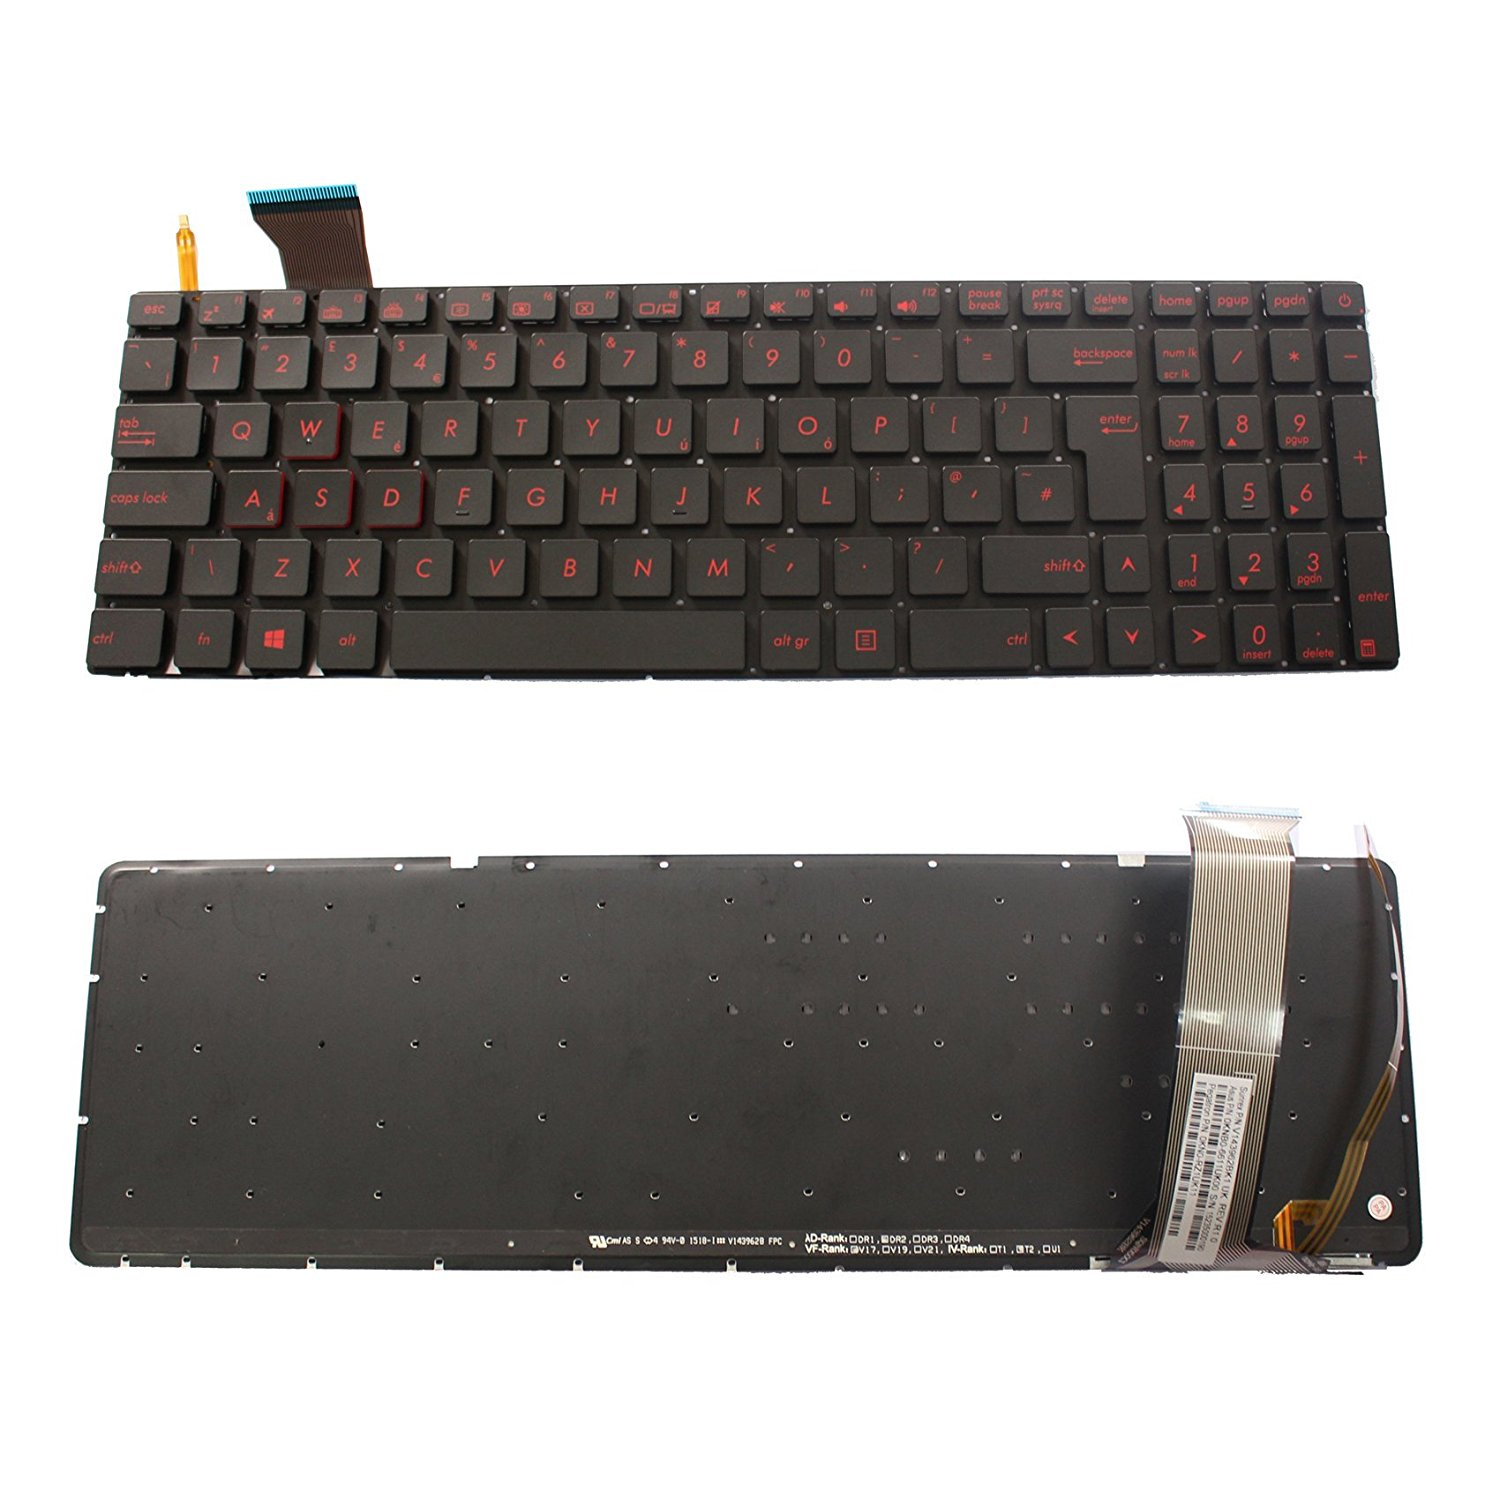 a857e06ac73 Generic NEW Black QWERTY Laptop UK Keyboard With Backlit For ASUS G551  G551J G551JK G551JM G551JW